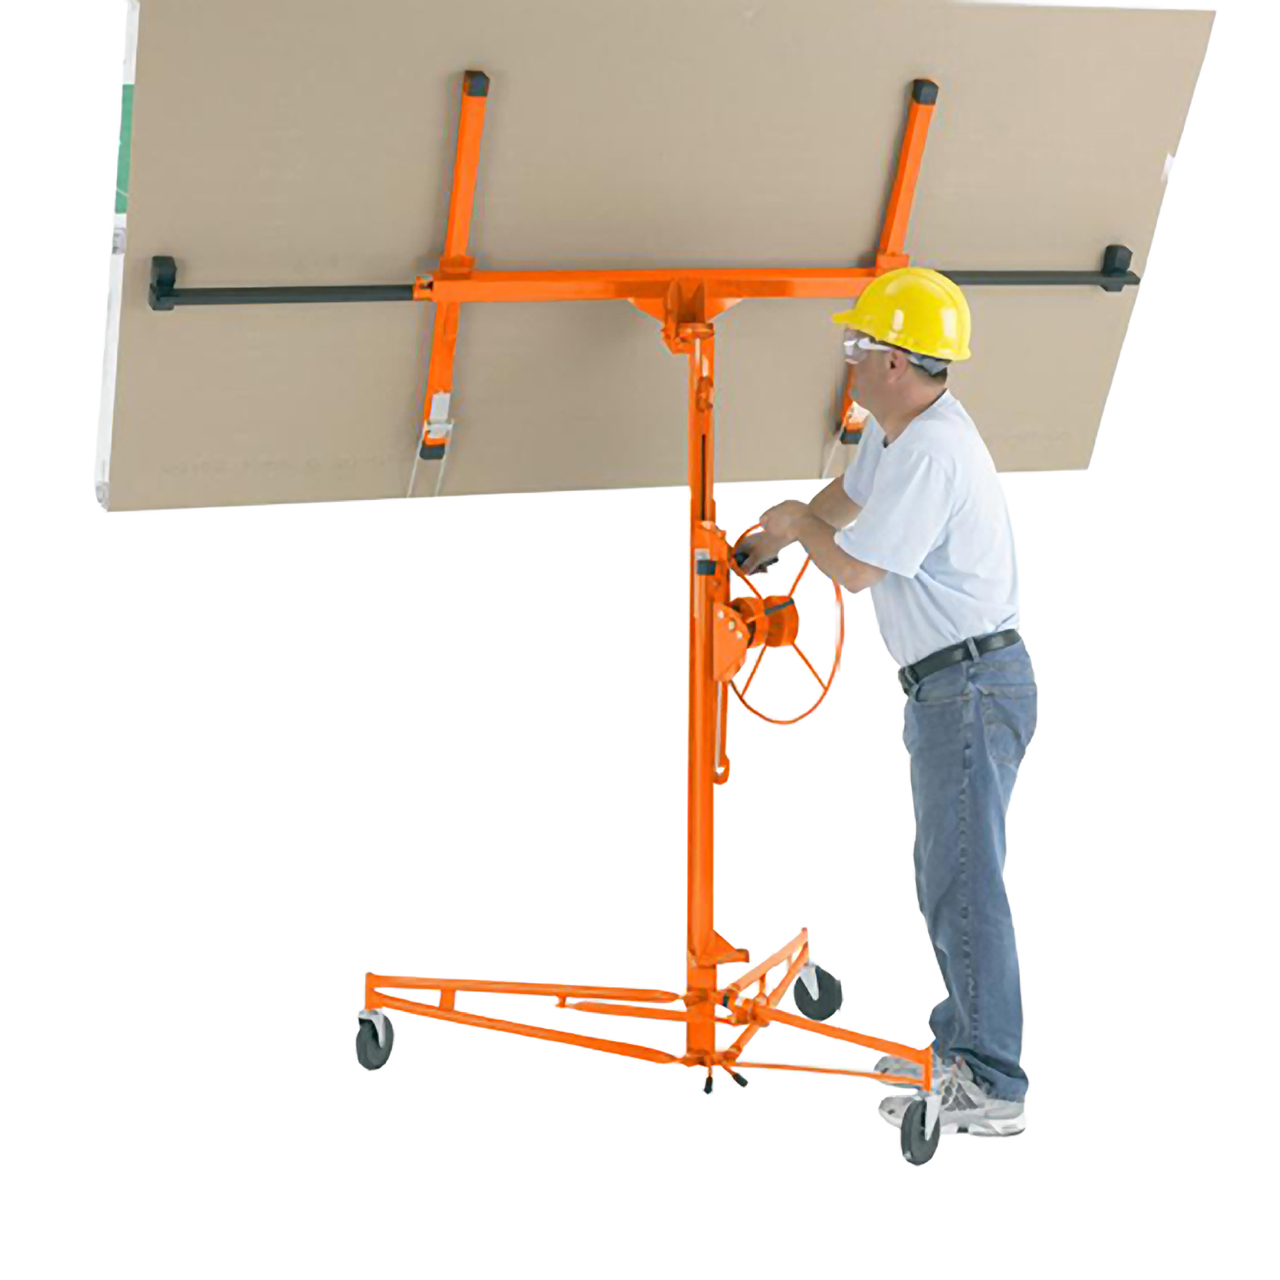 Pentagon Tool Professional 15' Foot Drywall Lift Hoist Wall Panel Lifter For Sheetrock at Sears.com